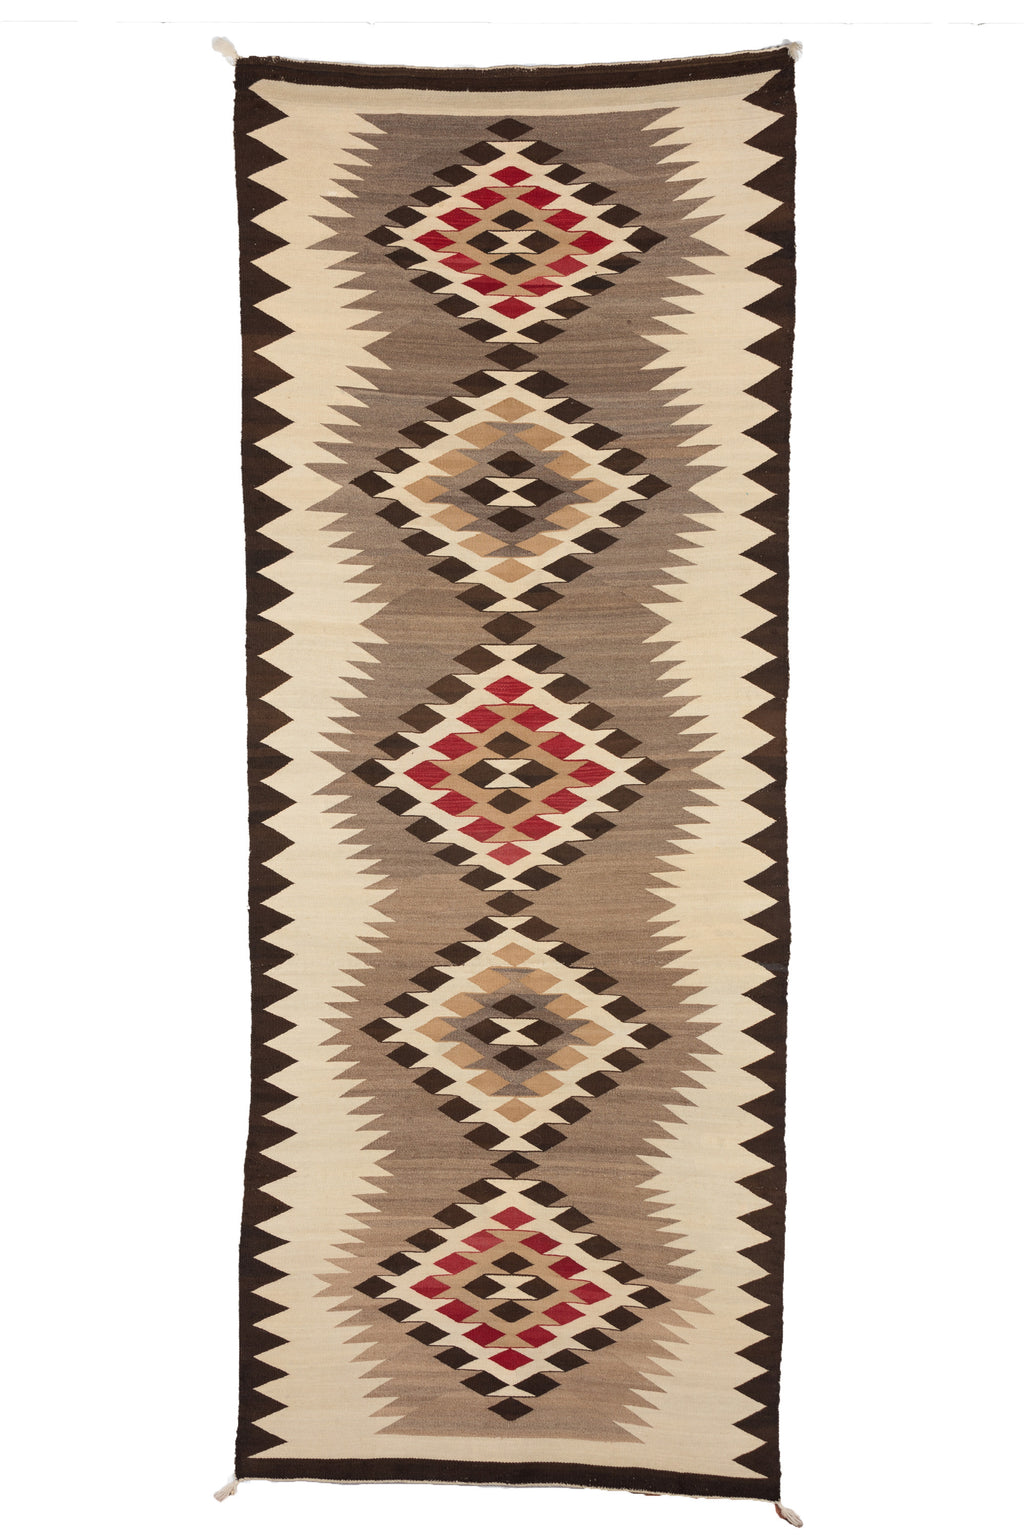 "Chinle Navajo Rug : Historic Runner : PC 47 : 3'7"" x 9'1"" - Getzwiller's Nizhoni Ranch Gallery"